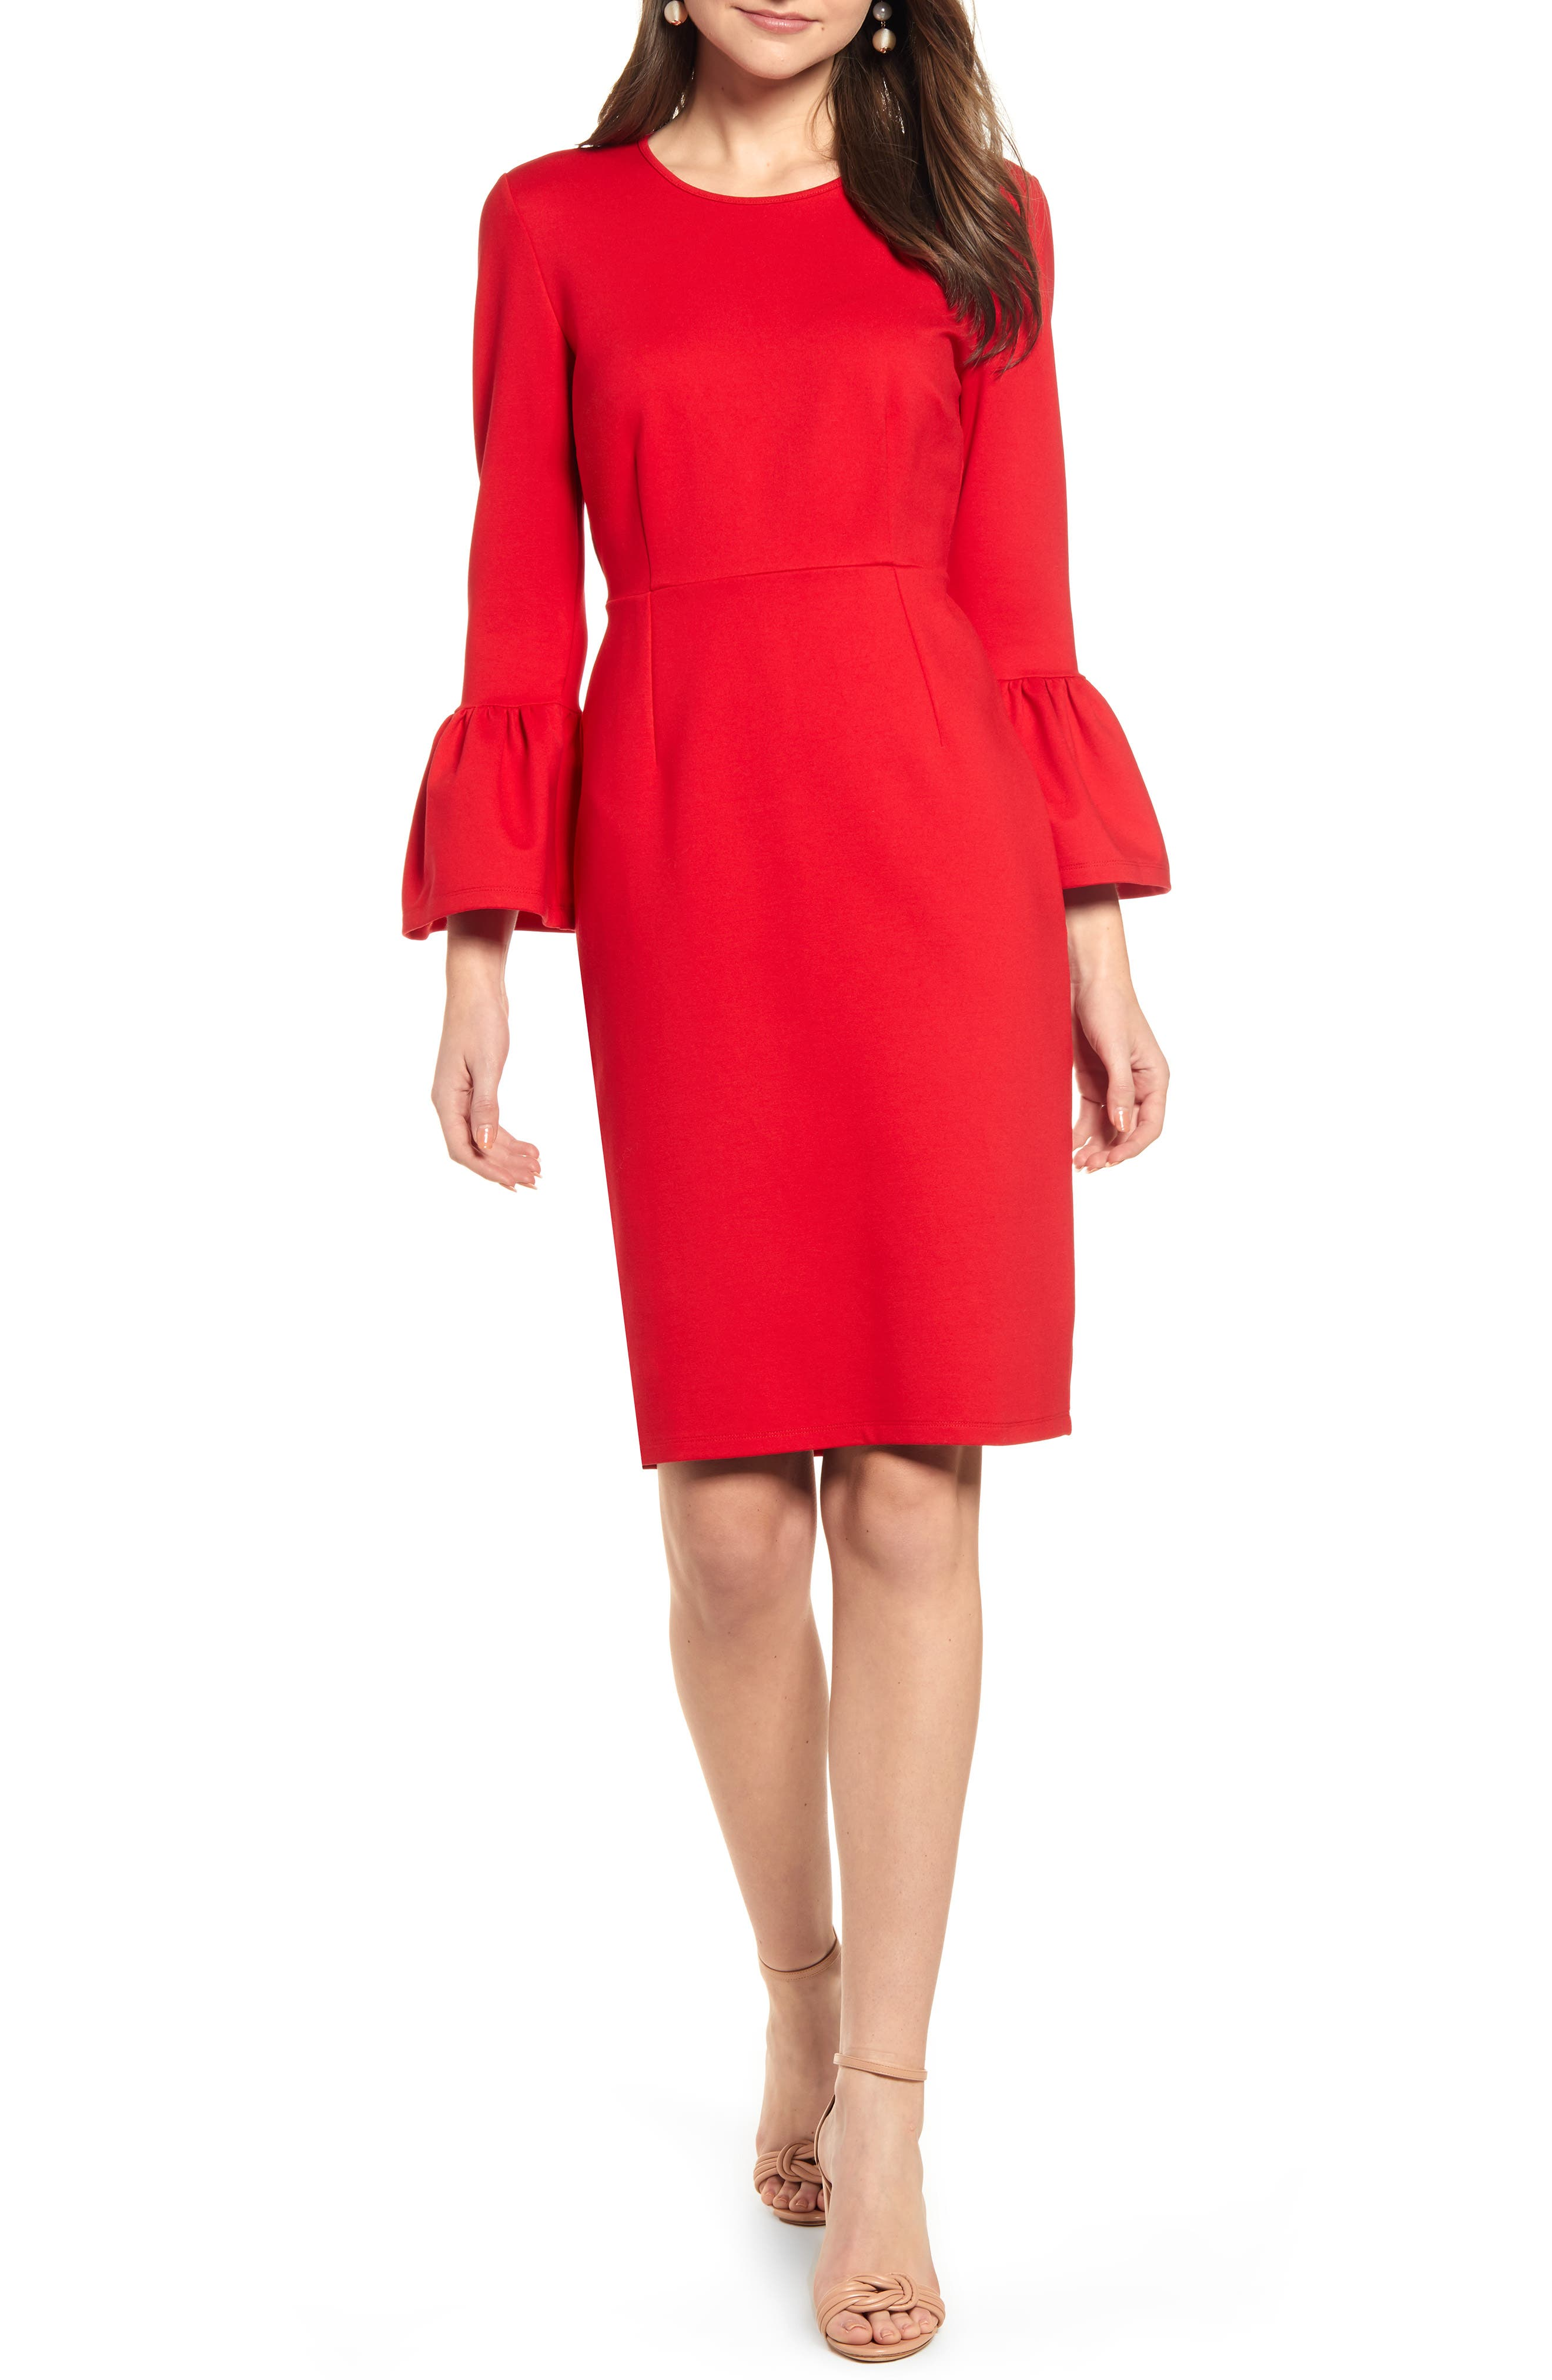 Rachel Parcell Bell Sleeve Sheath Dress, Red (Nordstrom Exclusive)